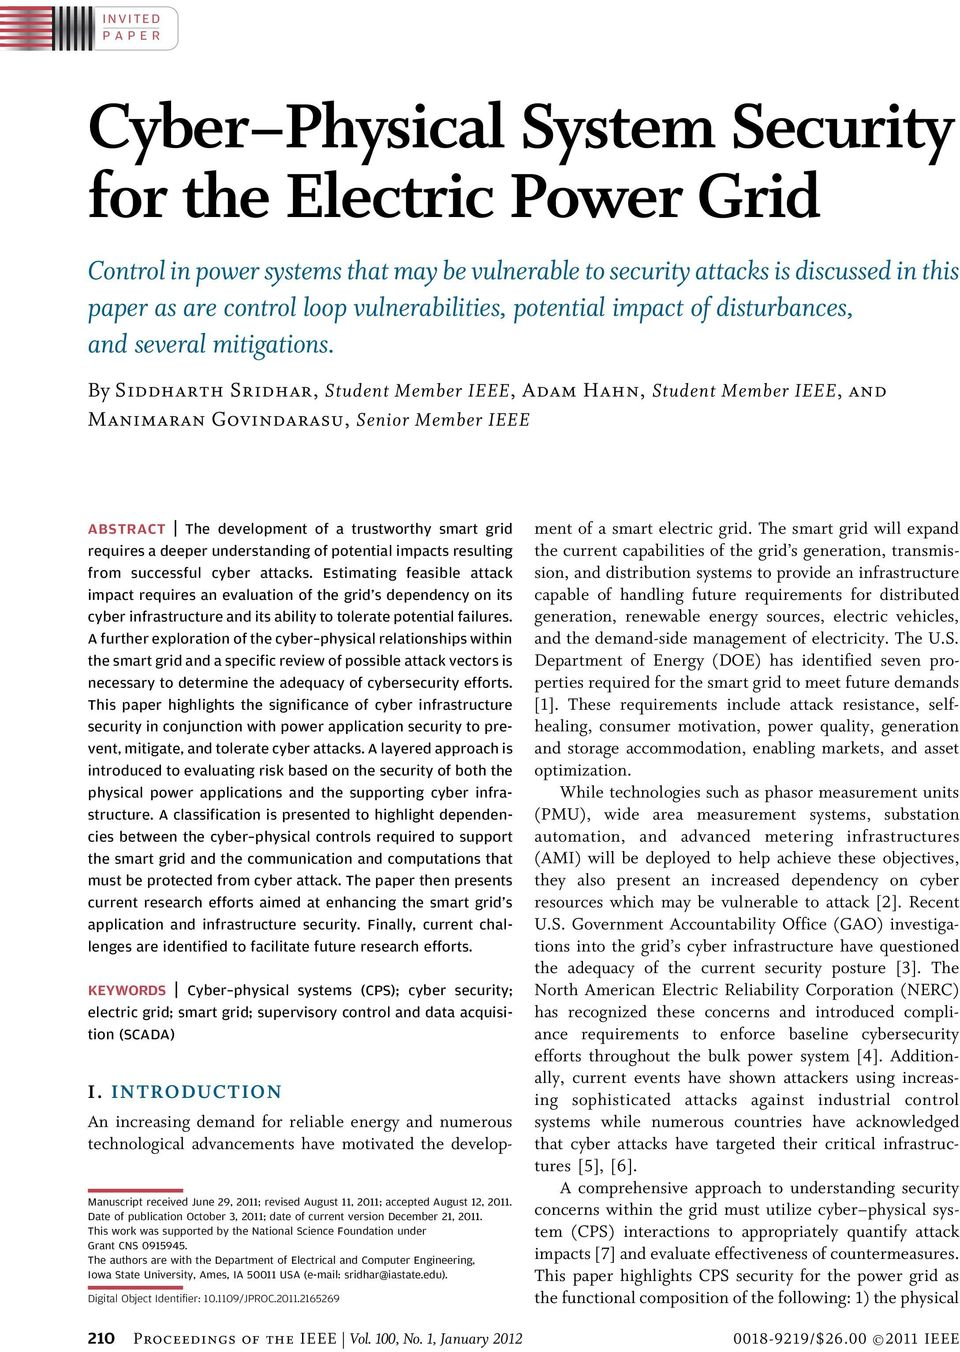 By Siddharth Sridhar, Student Member IEEE, Adam Hahn, Student Member IEEE, and Manimaran Govindarasu, Senior Member IEEE ABSTRACT The development of a trustworthy smart grid requires a deeper